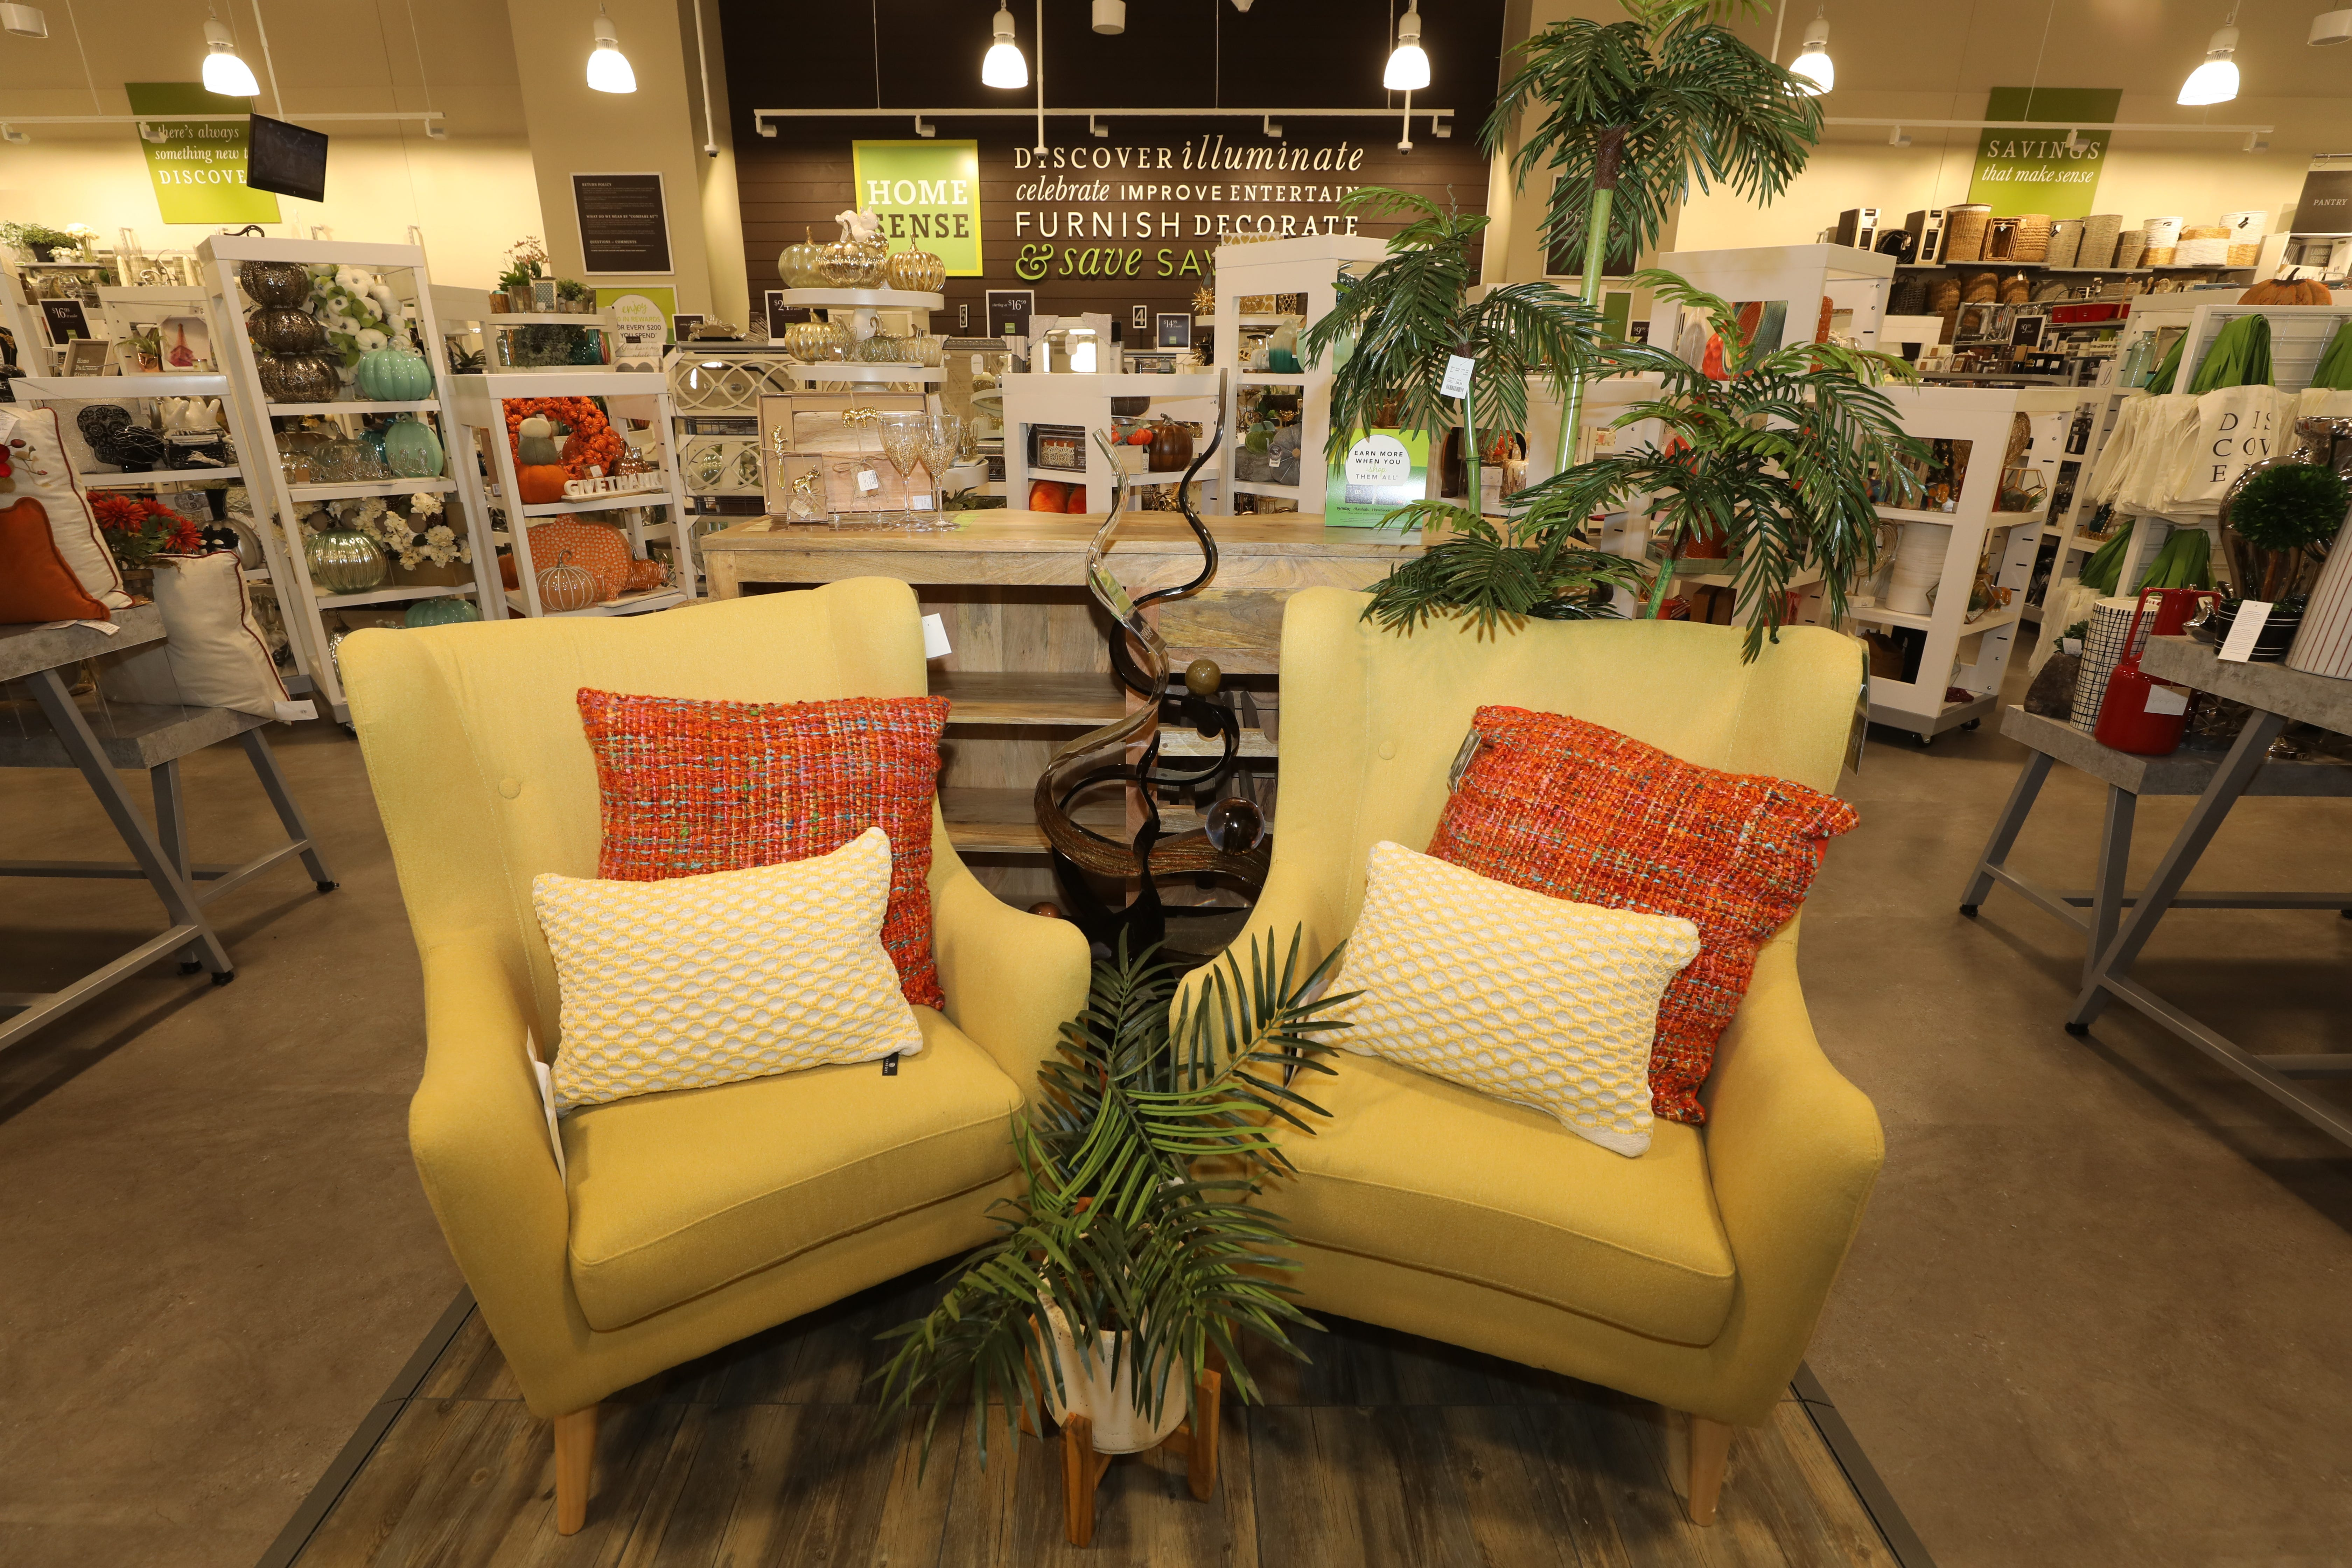 Opening Of Home Sense, A Store Operated By TJMaxx.